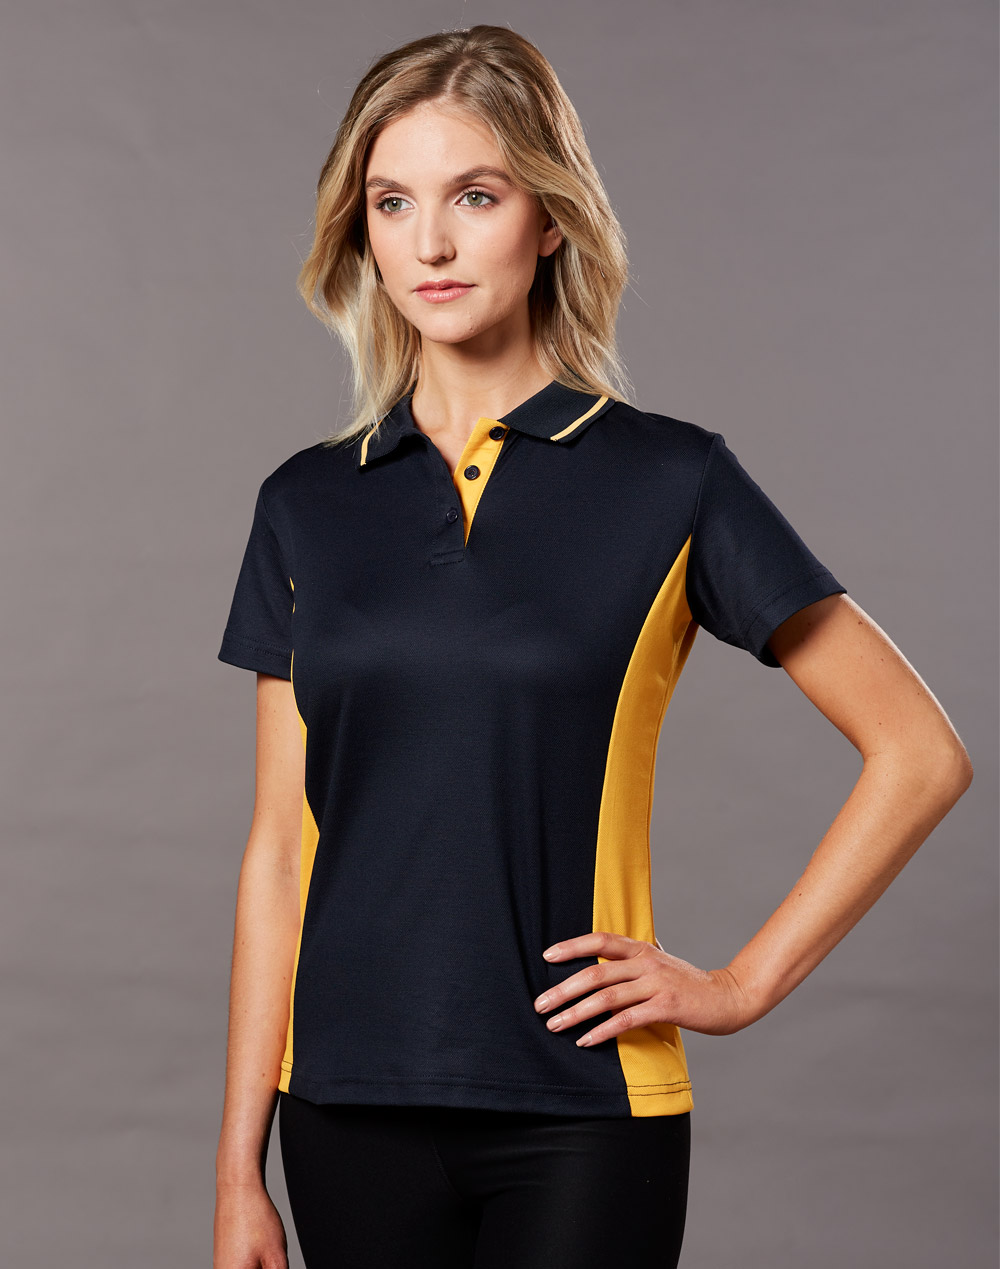 https://s3-ap-southeast-1.amazonaws.com/ws-imgs/POLOSHIRTS/PS74_Navygold_model.jpg